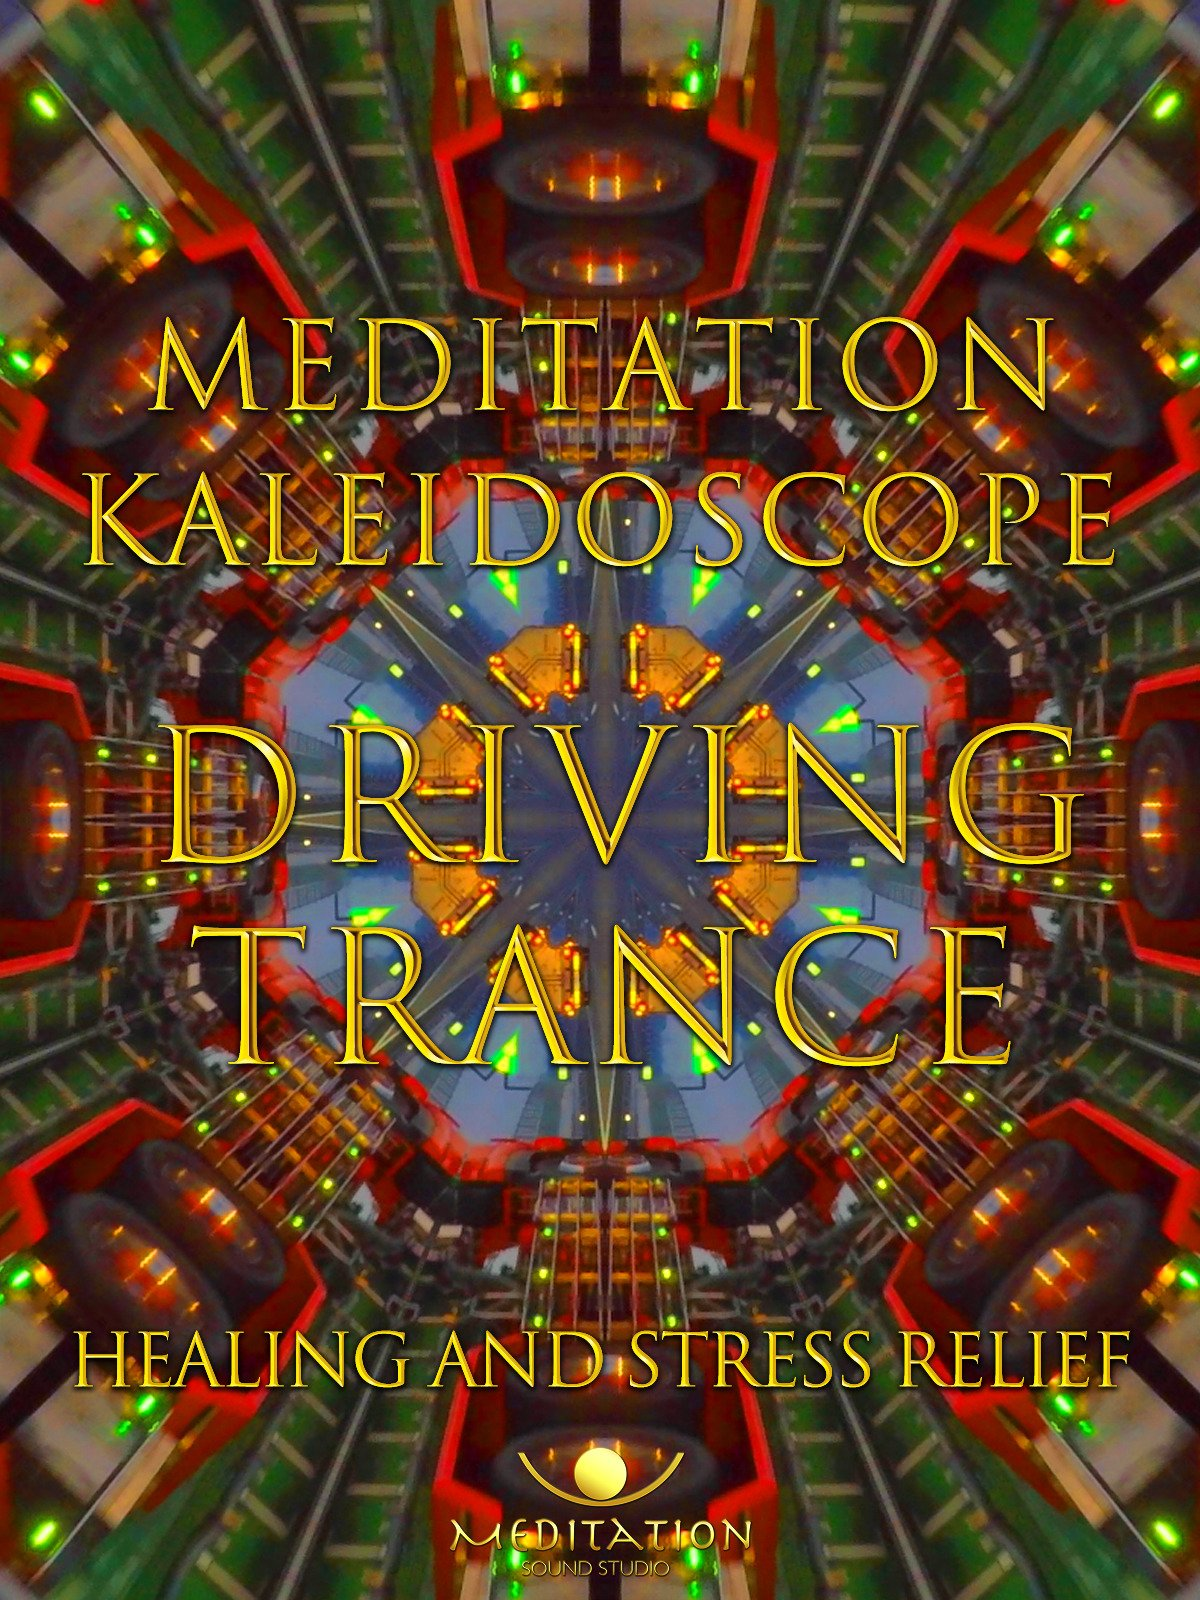 healing and stress relief meditation sound studio kaleidoscope driving trance